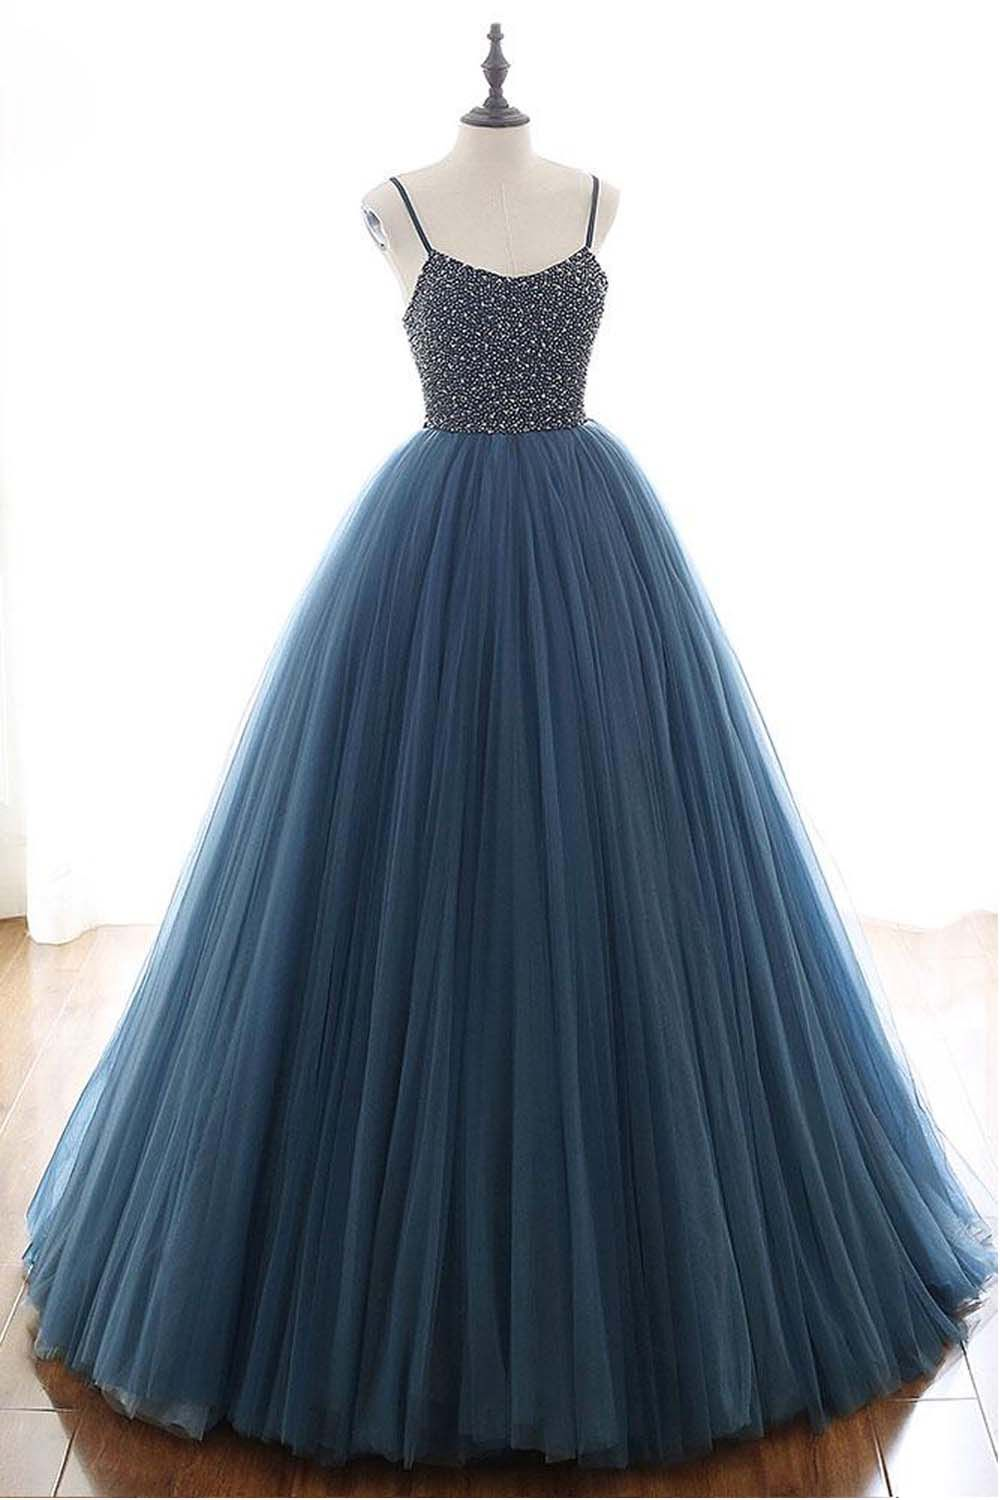 Ball Gown Deep Blue Tulle Prom Dress Evening Dress With Beading